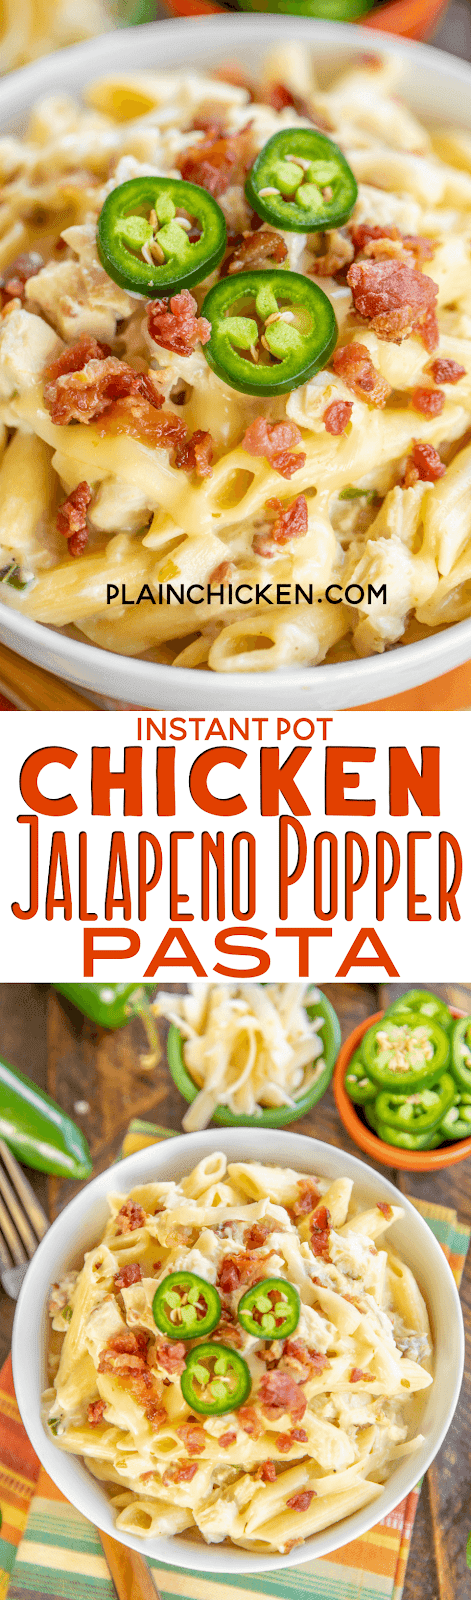 Instant Pot Chicken Jalapeño Popper Pasta - creamy chicken pasta loaded with bacon, jalapeños and pepper jack cheese! Seriously delicious! 4 minutes of cook time. We ate this two days in a row. Chicken, jalapeños, bacon, garlic, onion, chicken broth, water, cream cheese, penne pasta and pepper jack cheese. Everyone cleaned their plate! Even our picky eaters!! #chicken #InstantPot #pasta